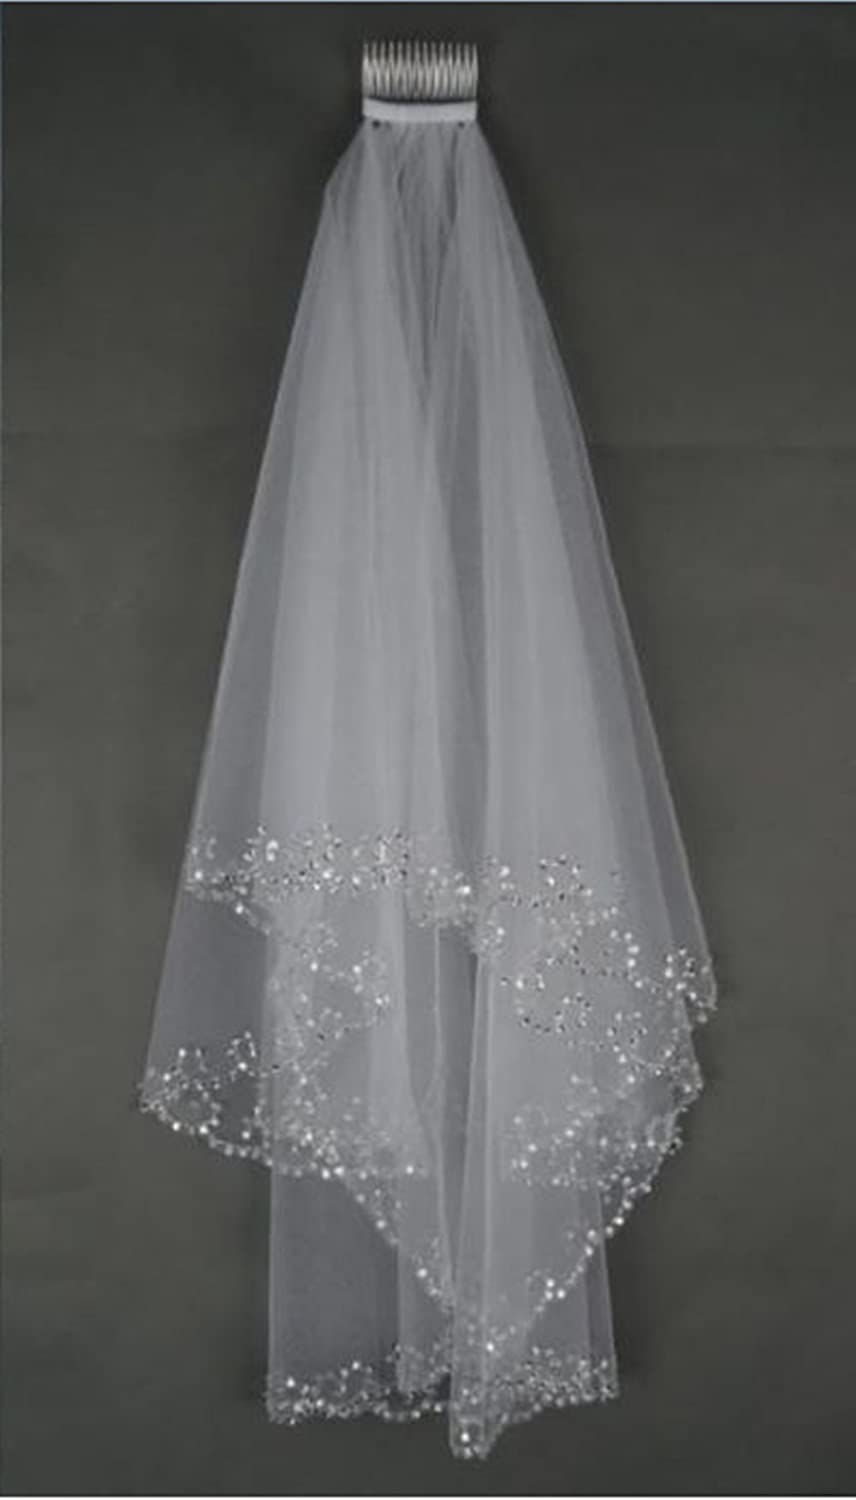 mlt beaded edge pearl sequins wedding bridal veil with comb